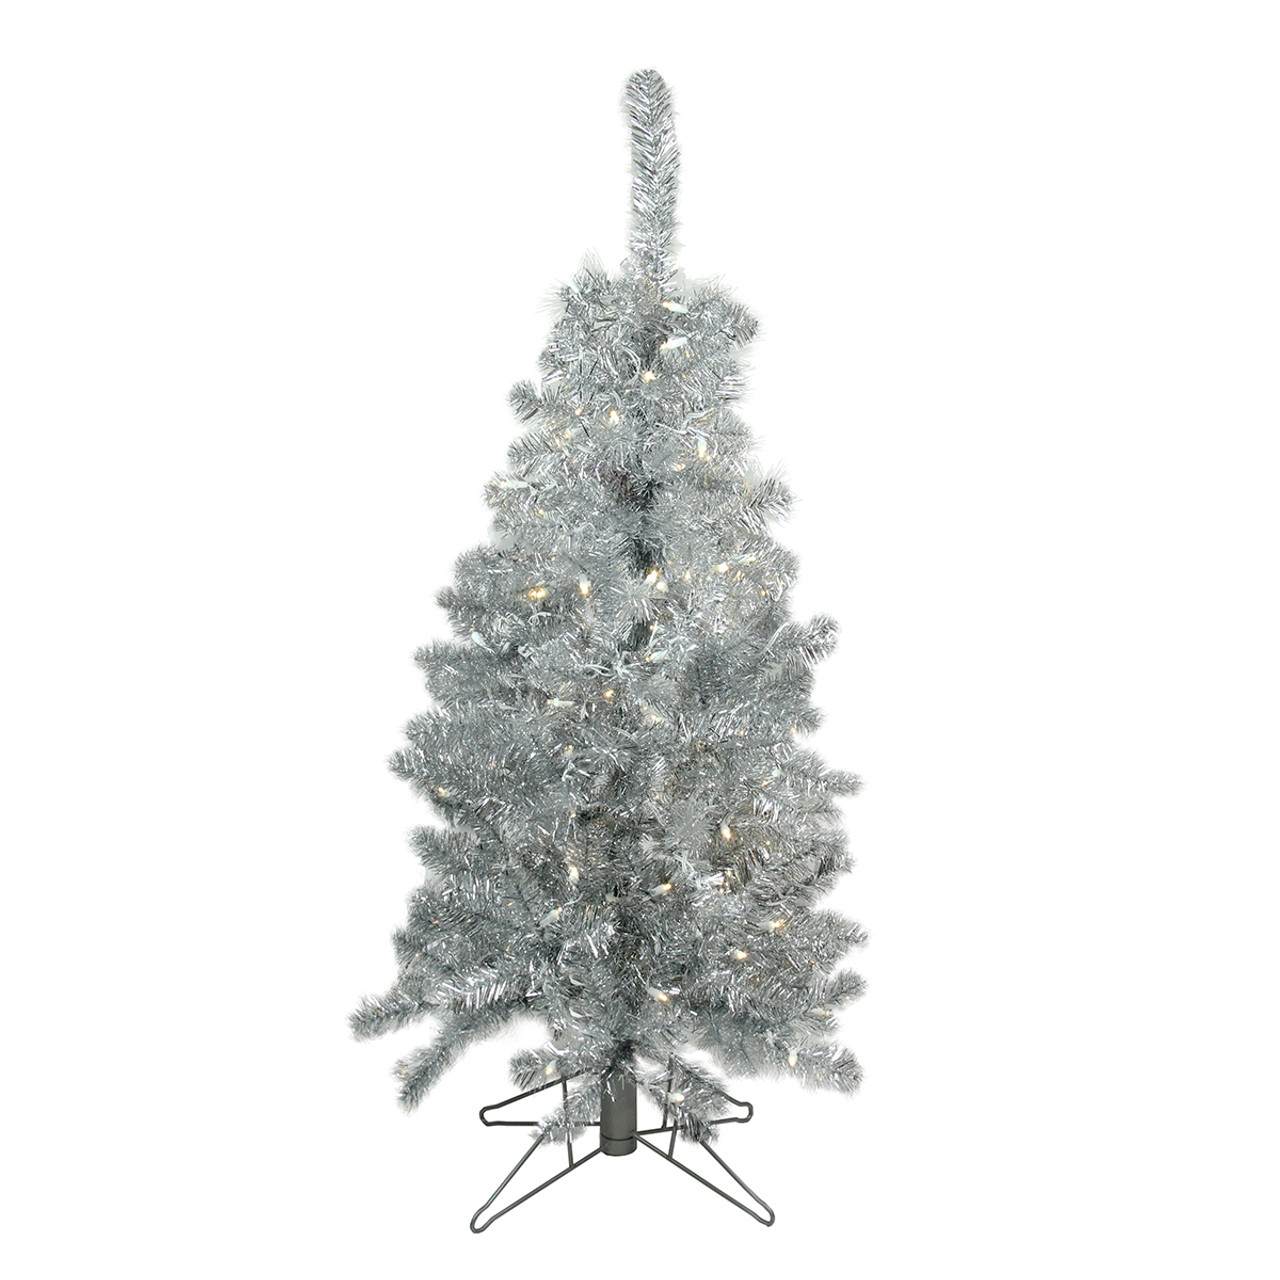 4 pre lit medium silver tinsel artificial christmas tree clear lights 31749134 - Silver Tinsel Christmas Tree